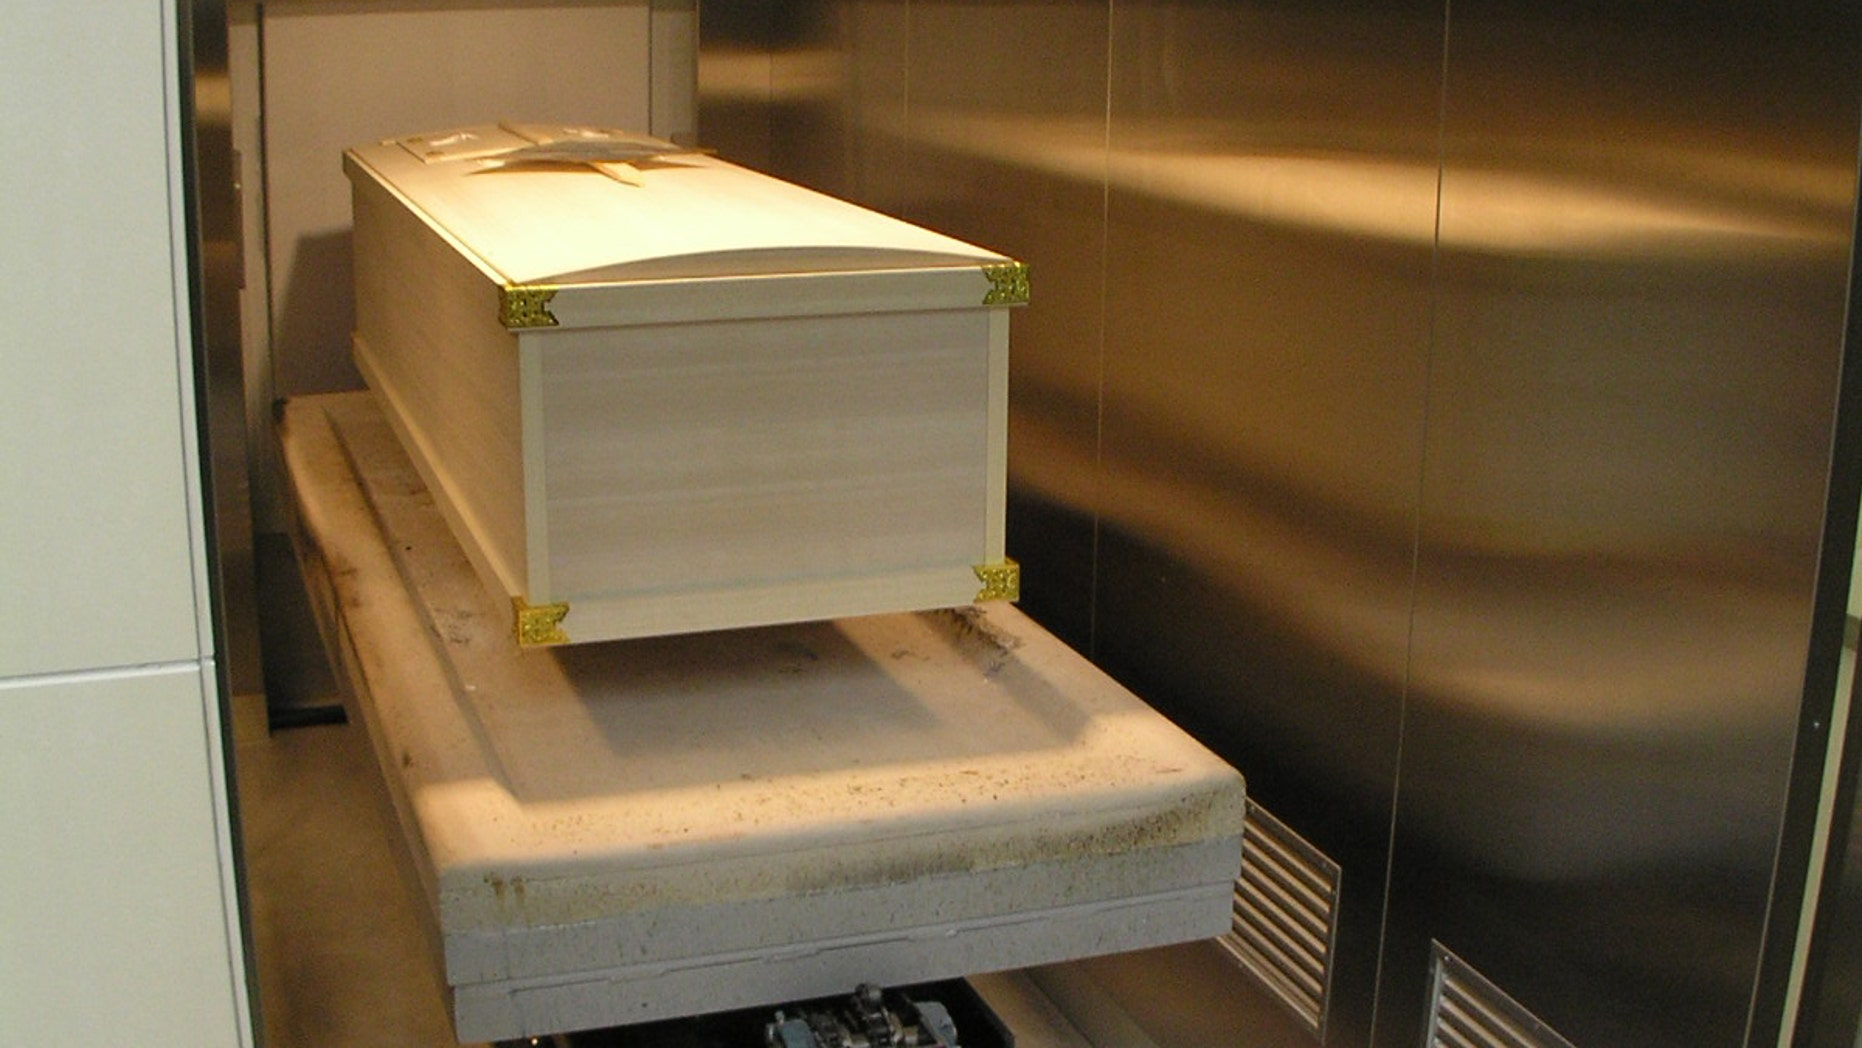 A crematory similar to the one pictured above sent the wrong remains to a mourning family in Utah.